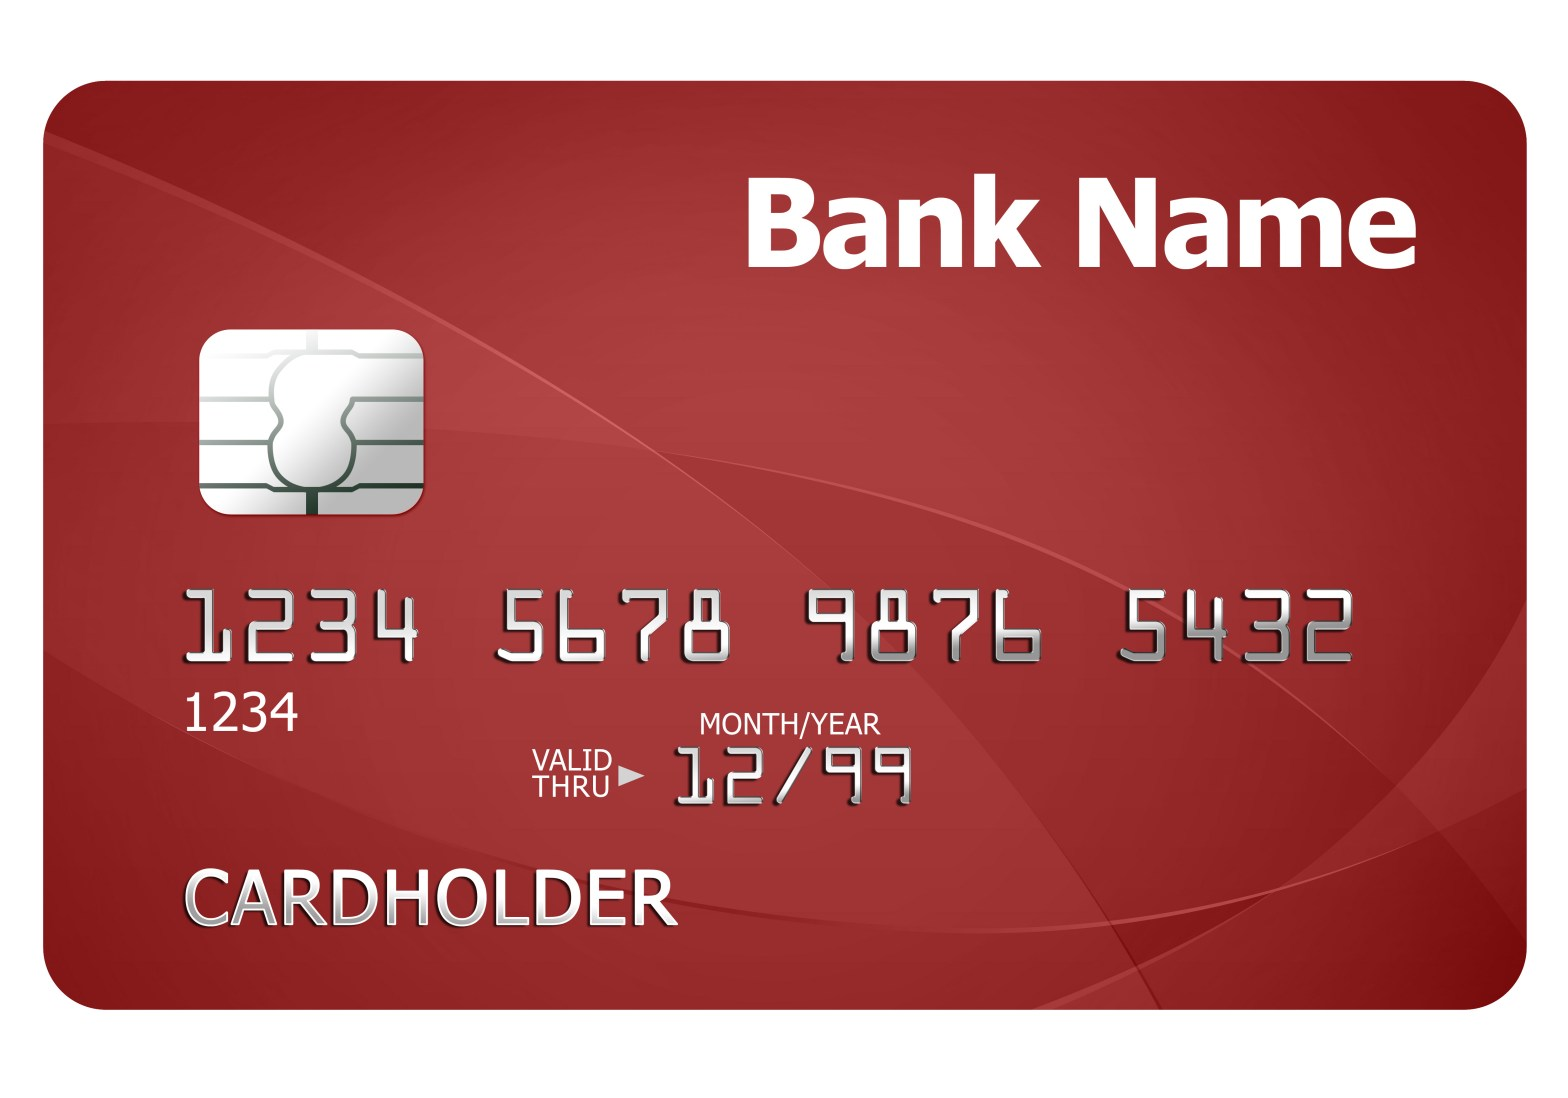 A sample debit card with test data on it.